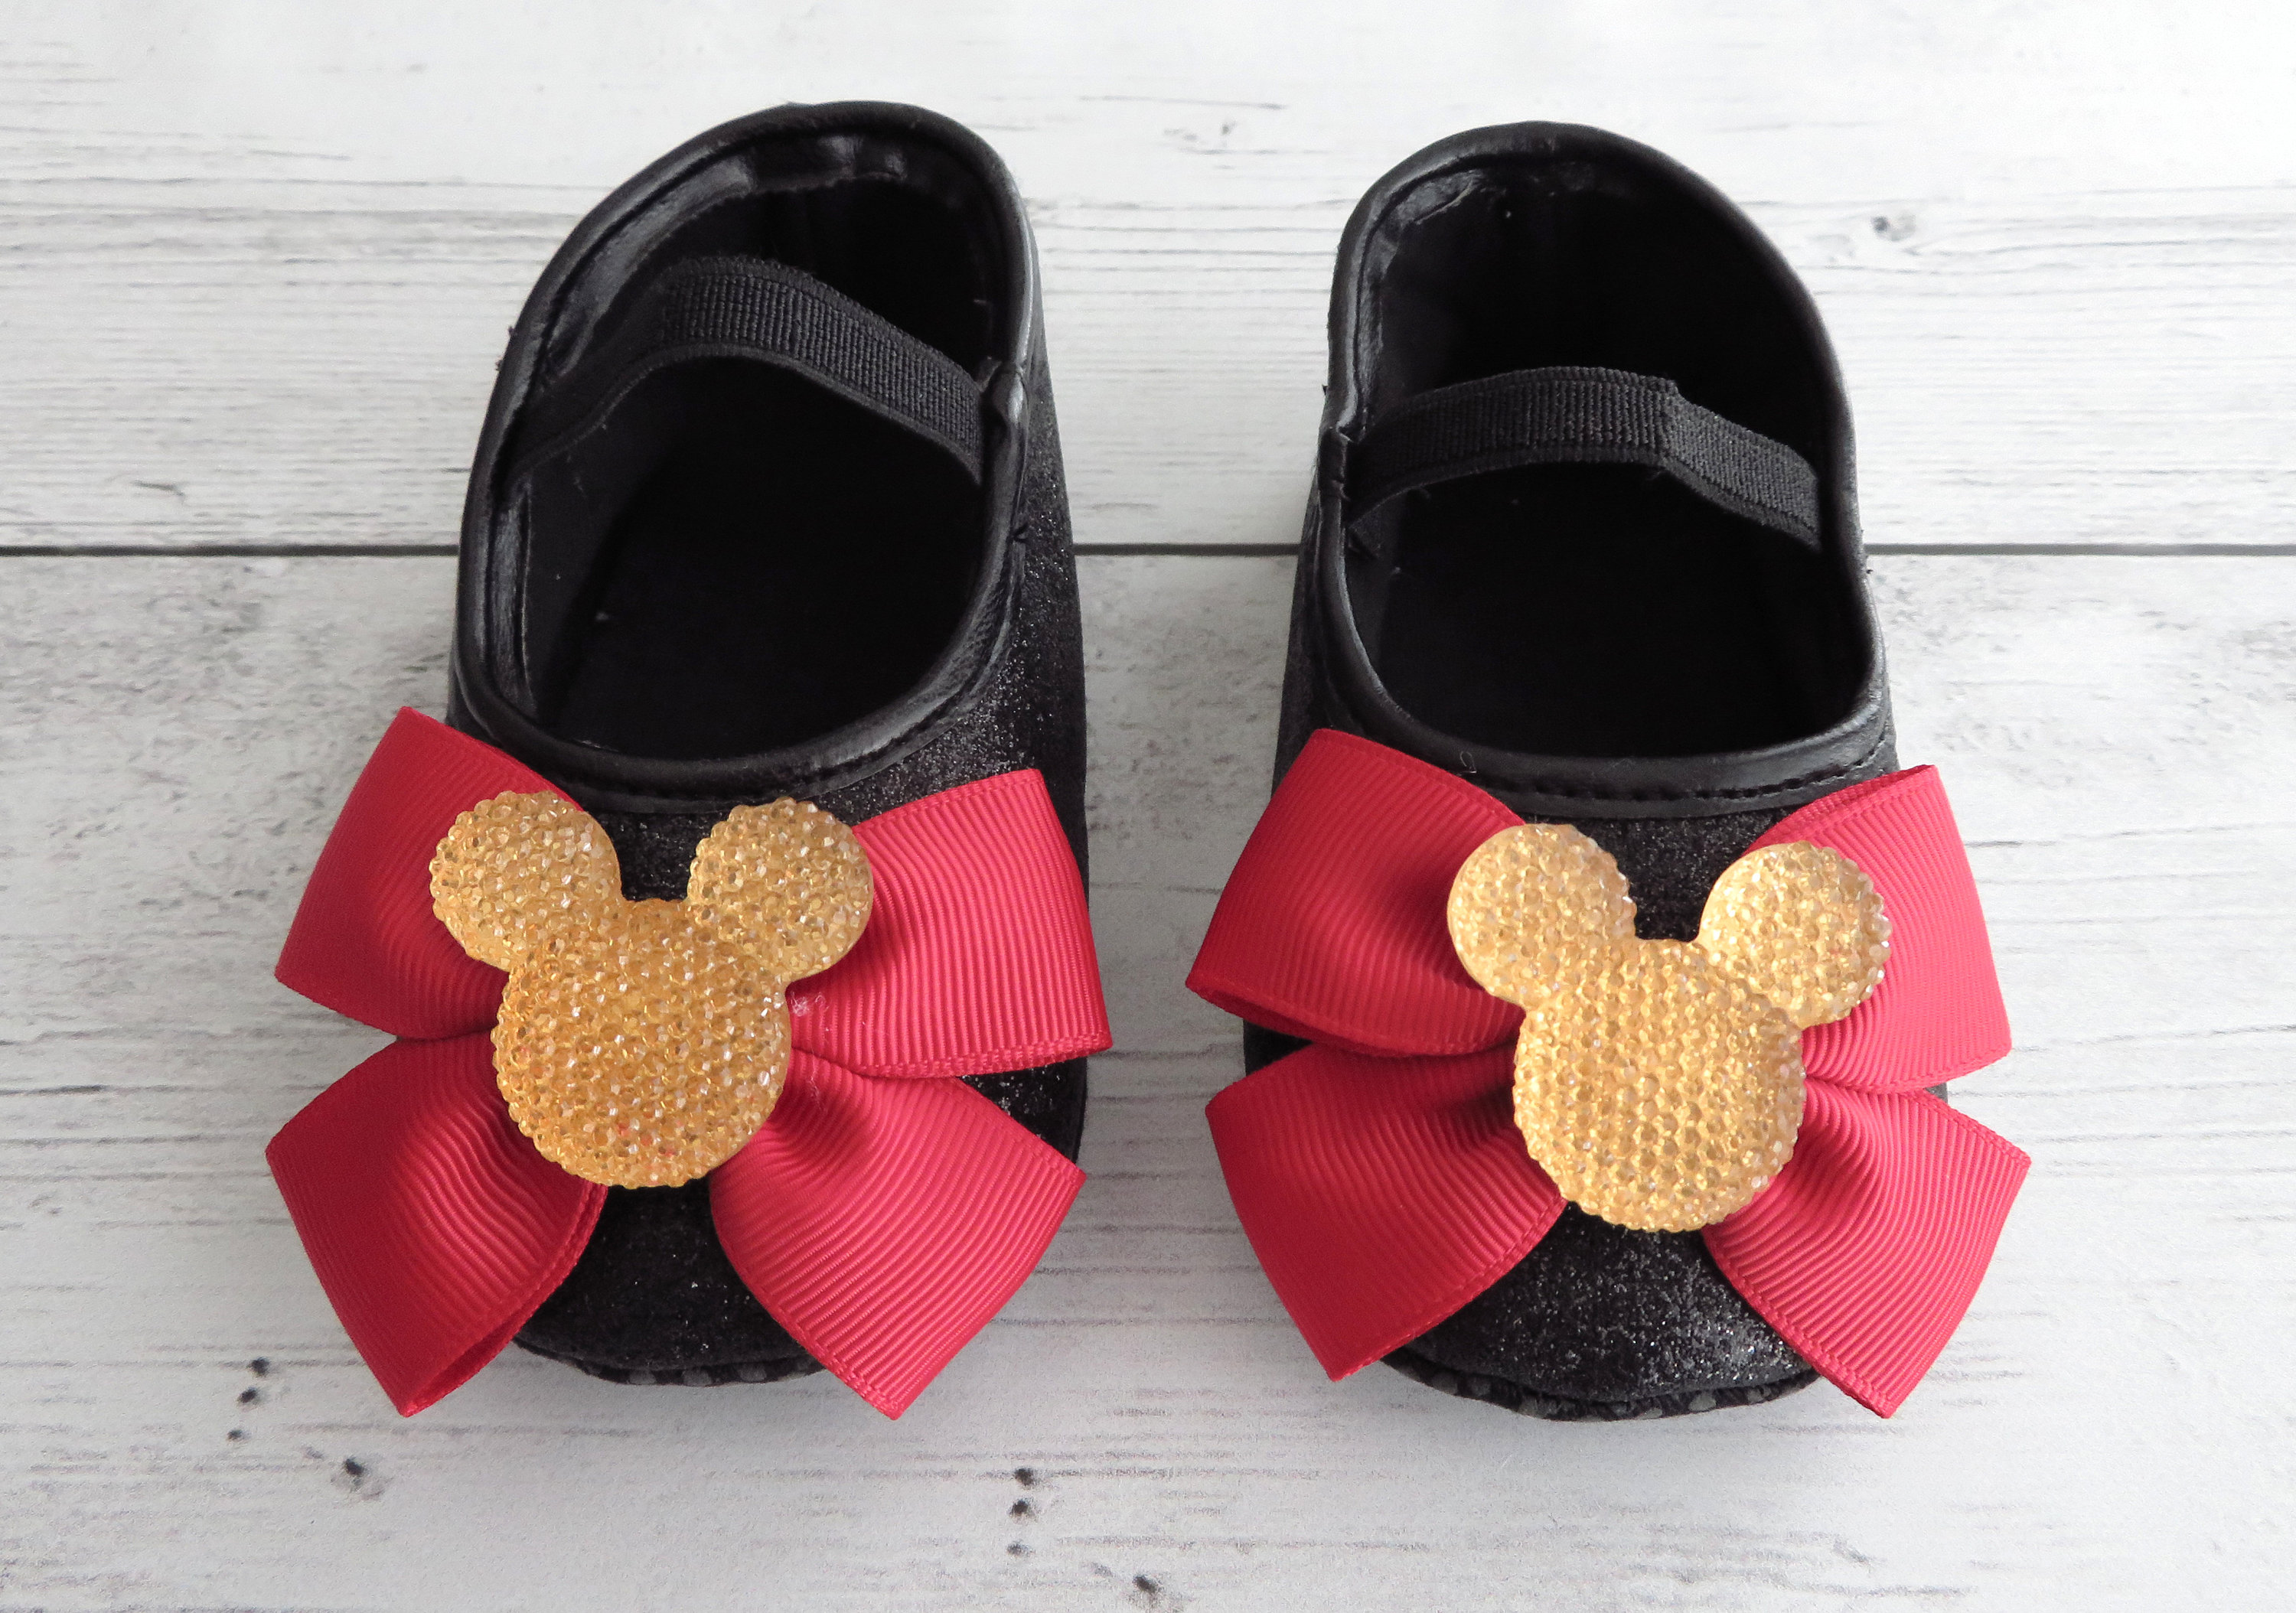 Minnie Mouse First Birthday Shoes in black red and gold - minnie 1st bday outfit, minnie red gold birthday, minnie shoes, minnie mouse bday